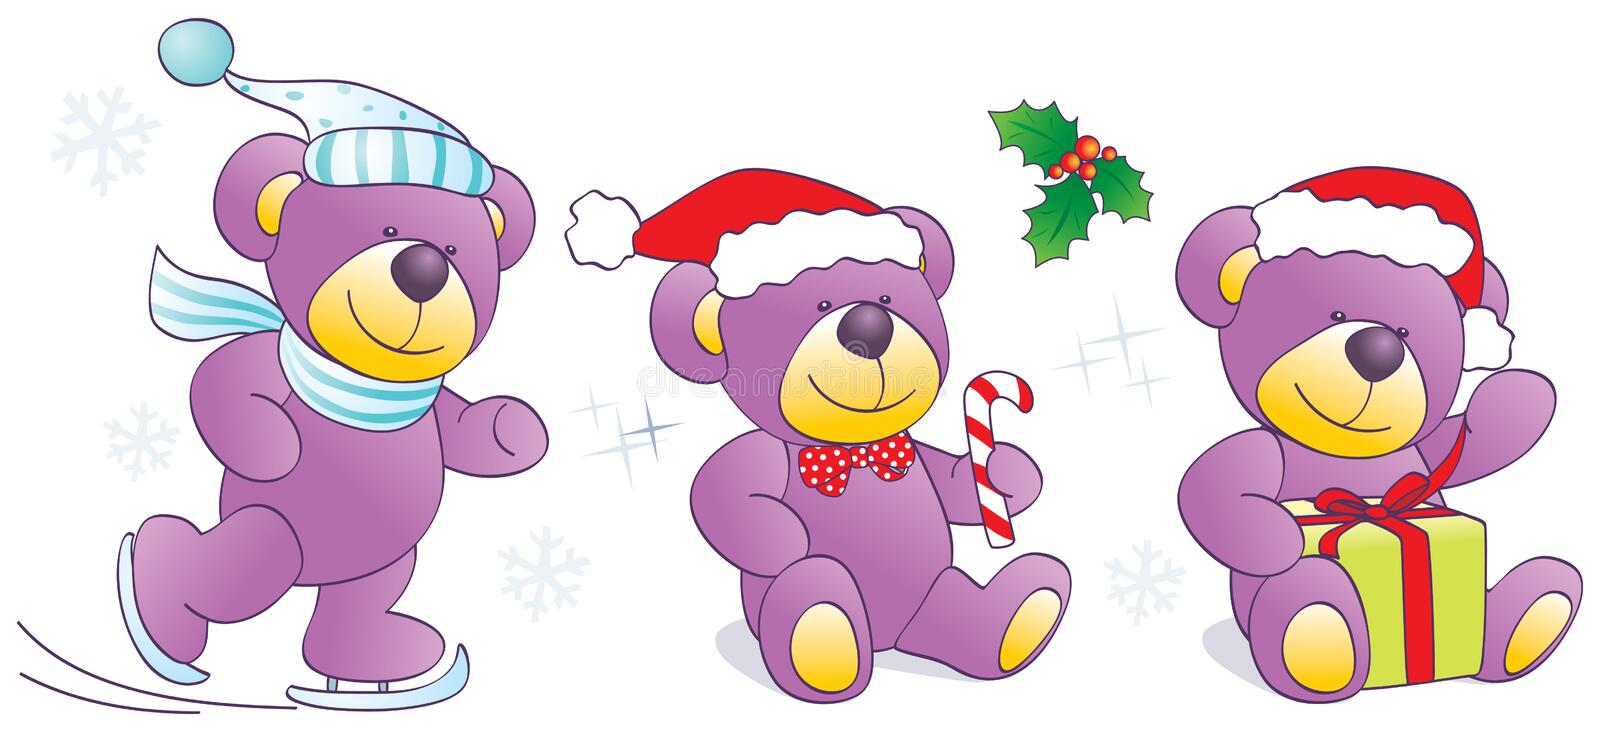 Download Christmas, Winter Teddy Bears With Skates, Candy, Stock Photos - Image: 22303683